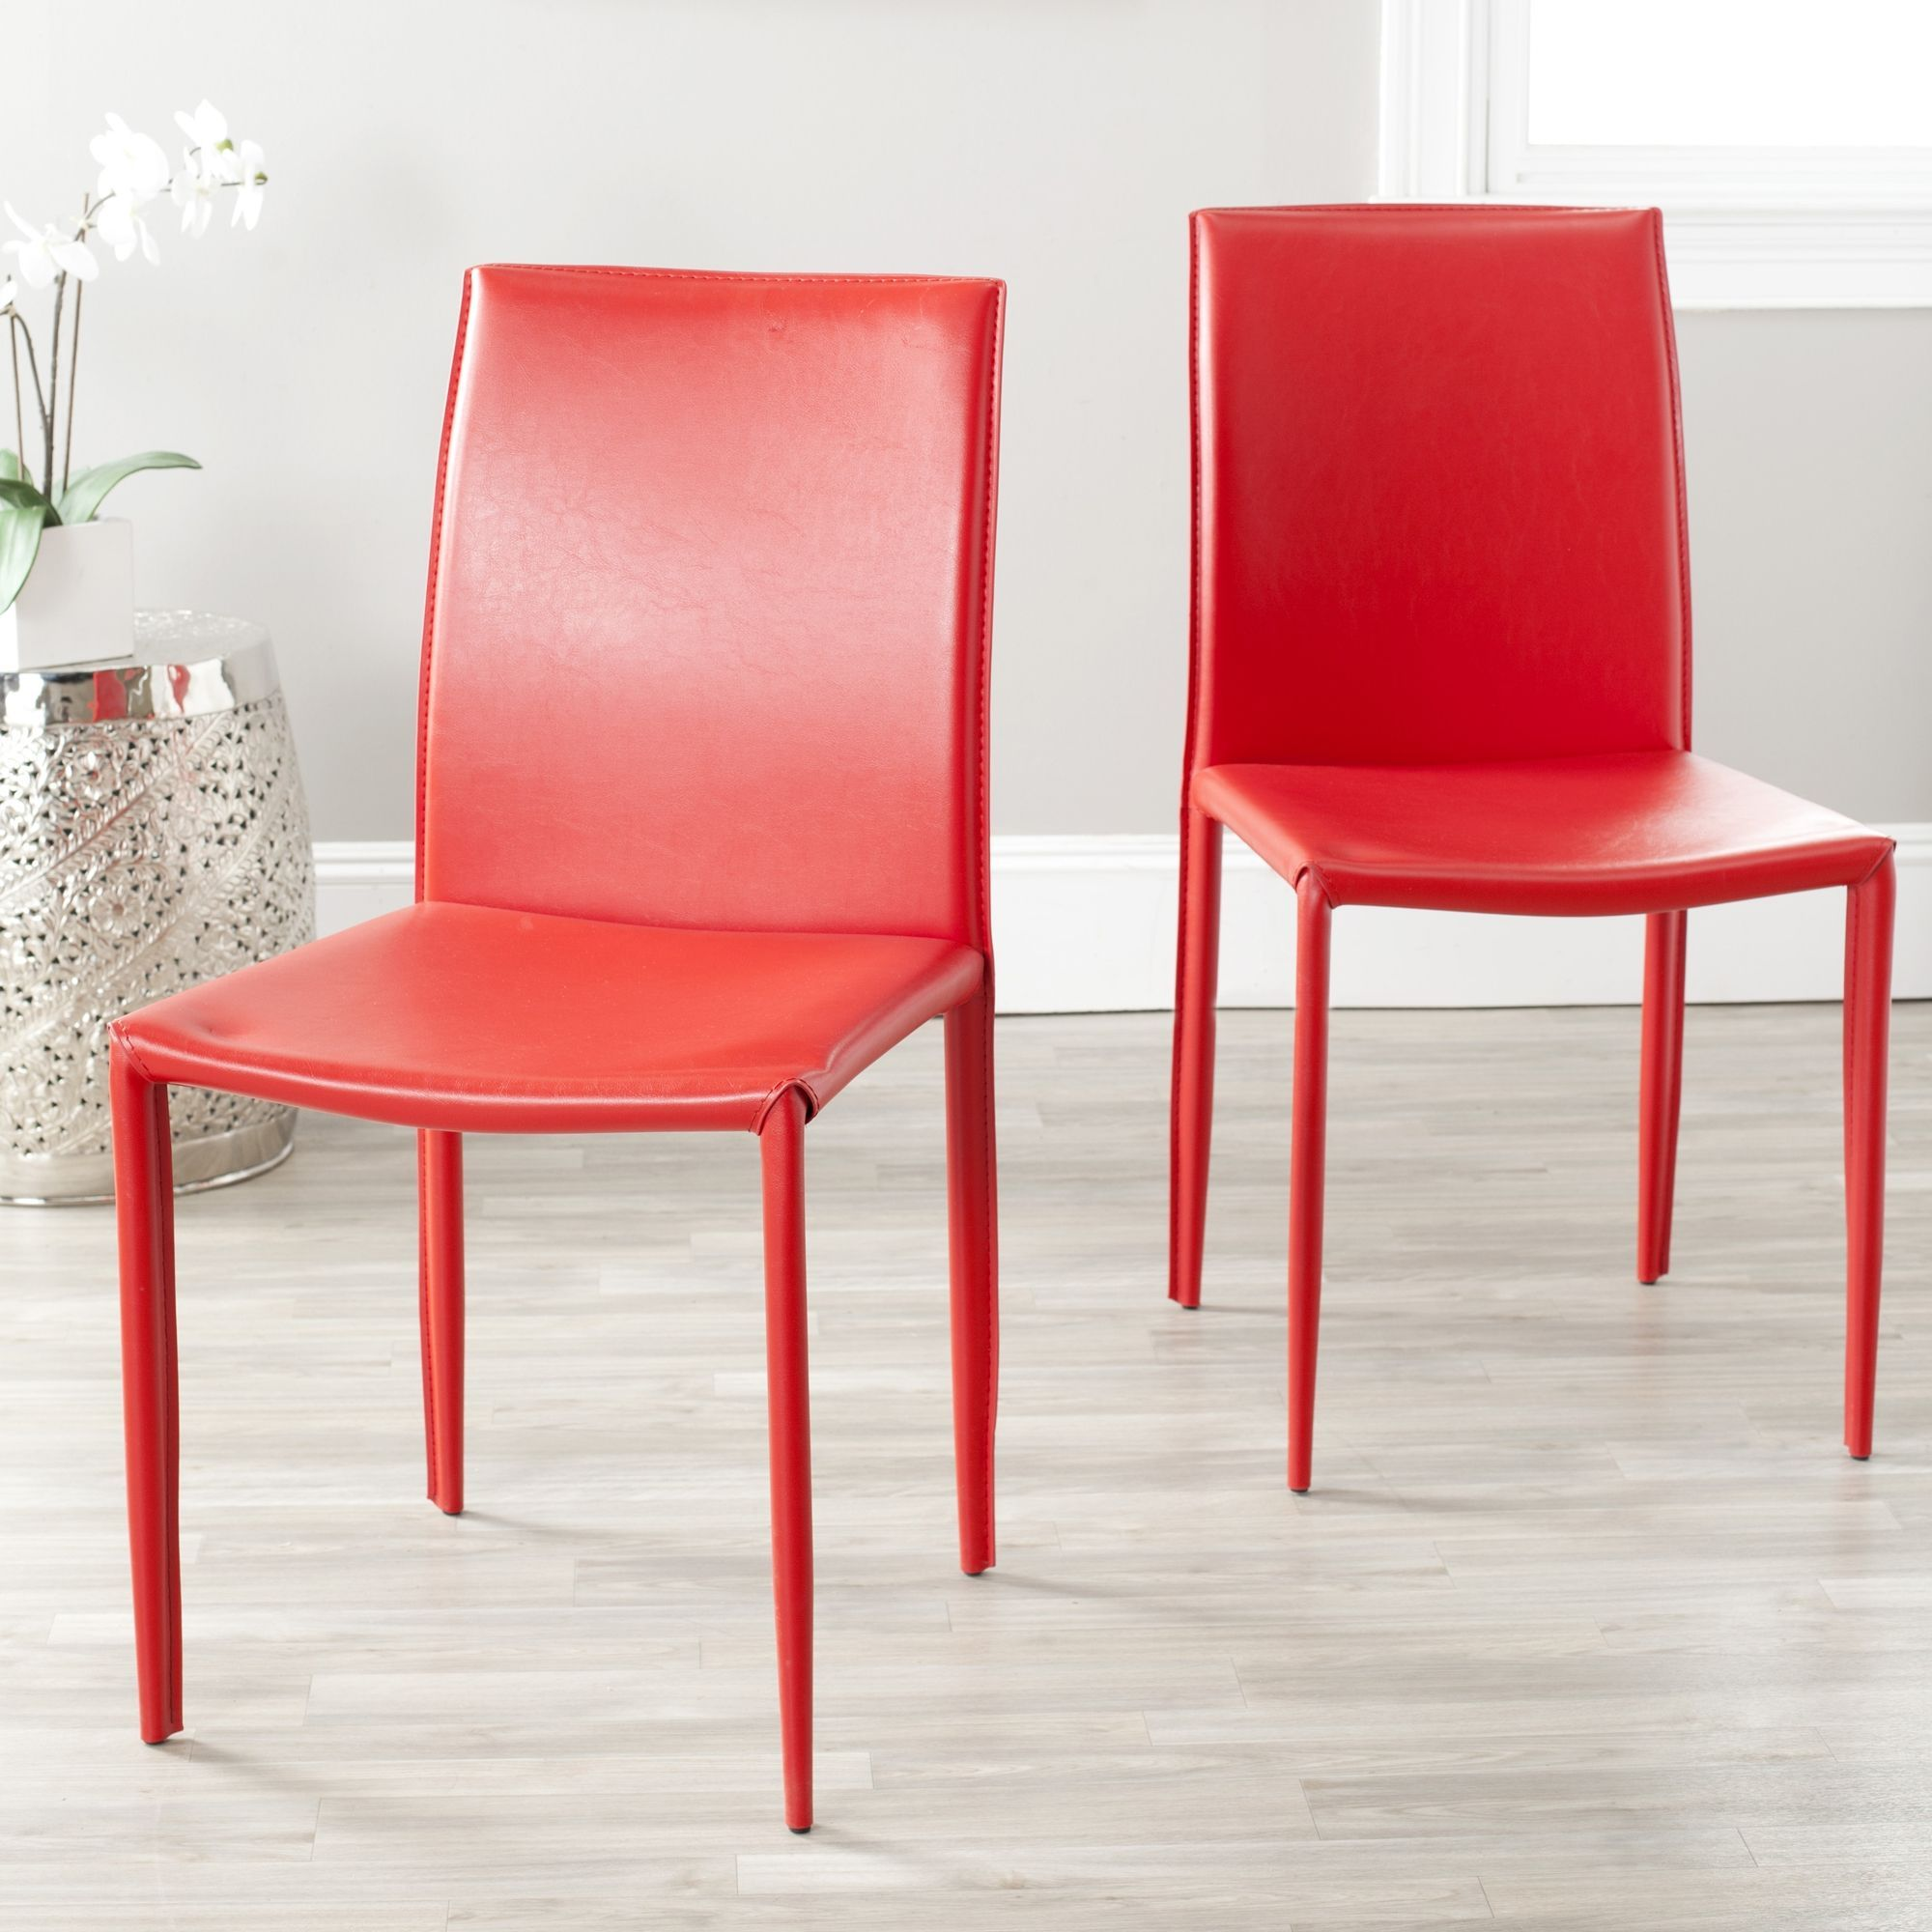 Safavieh Mid Century Dining Jazzy Bonded Leather Red Dining Chairs Set Of 2 Fox2009c Set2 Red Dining Chairs Dining Chairs Fully Upholstered Dining Chair